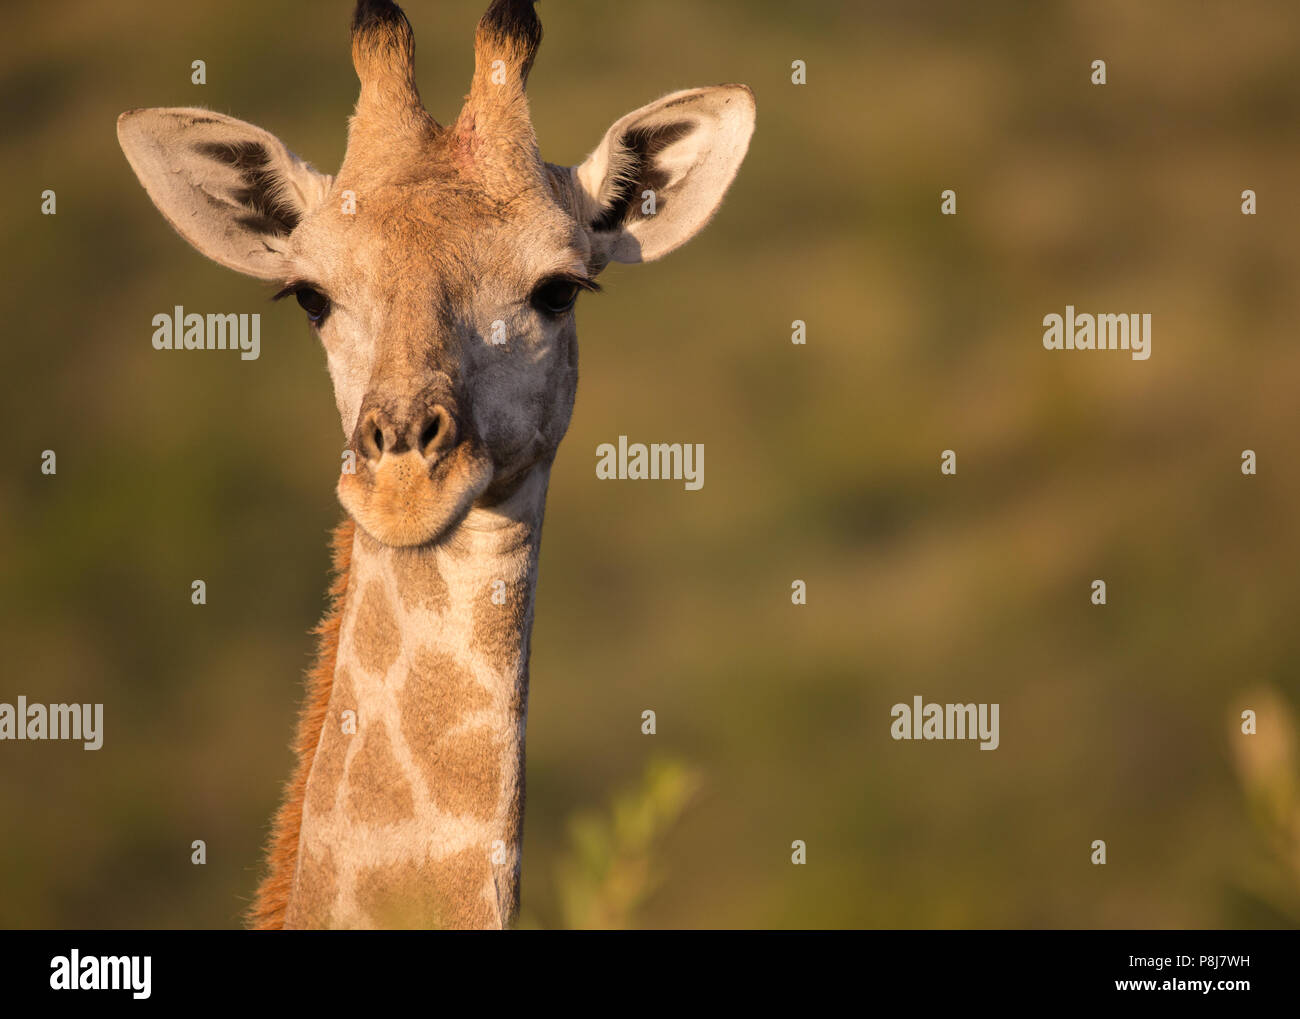 headshot of a Giraffe (Giraffa camelopardalis) facing the camera early morning at Pilanesberg National Park in South Africa - Stock Image